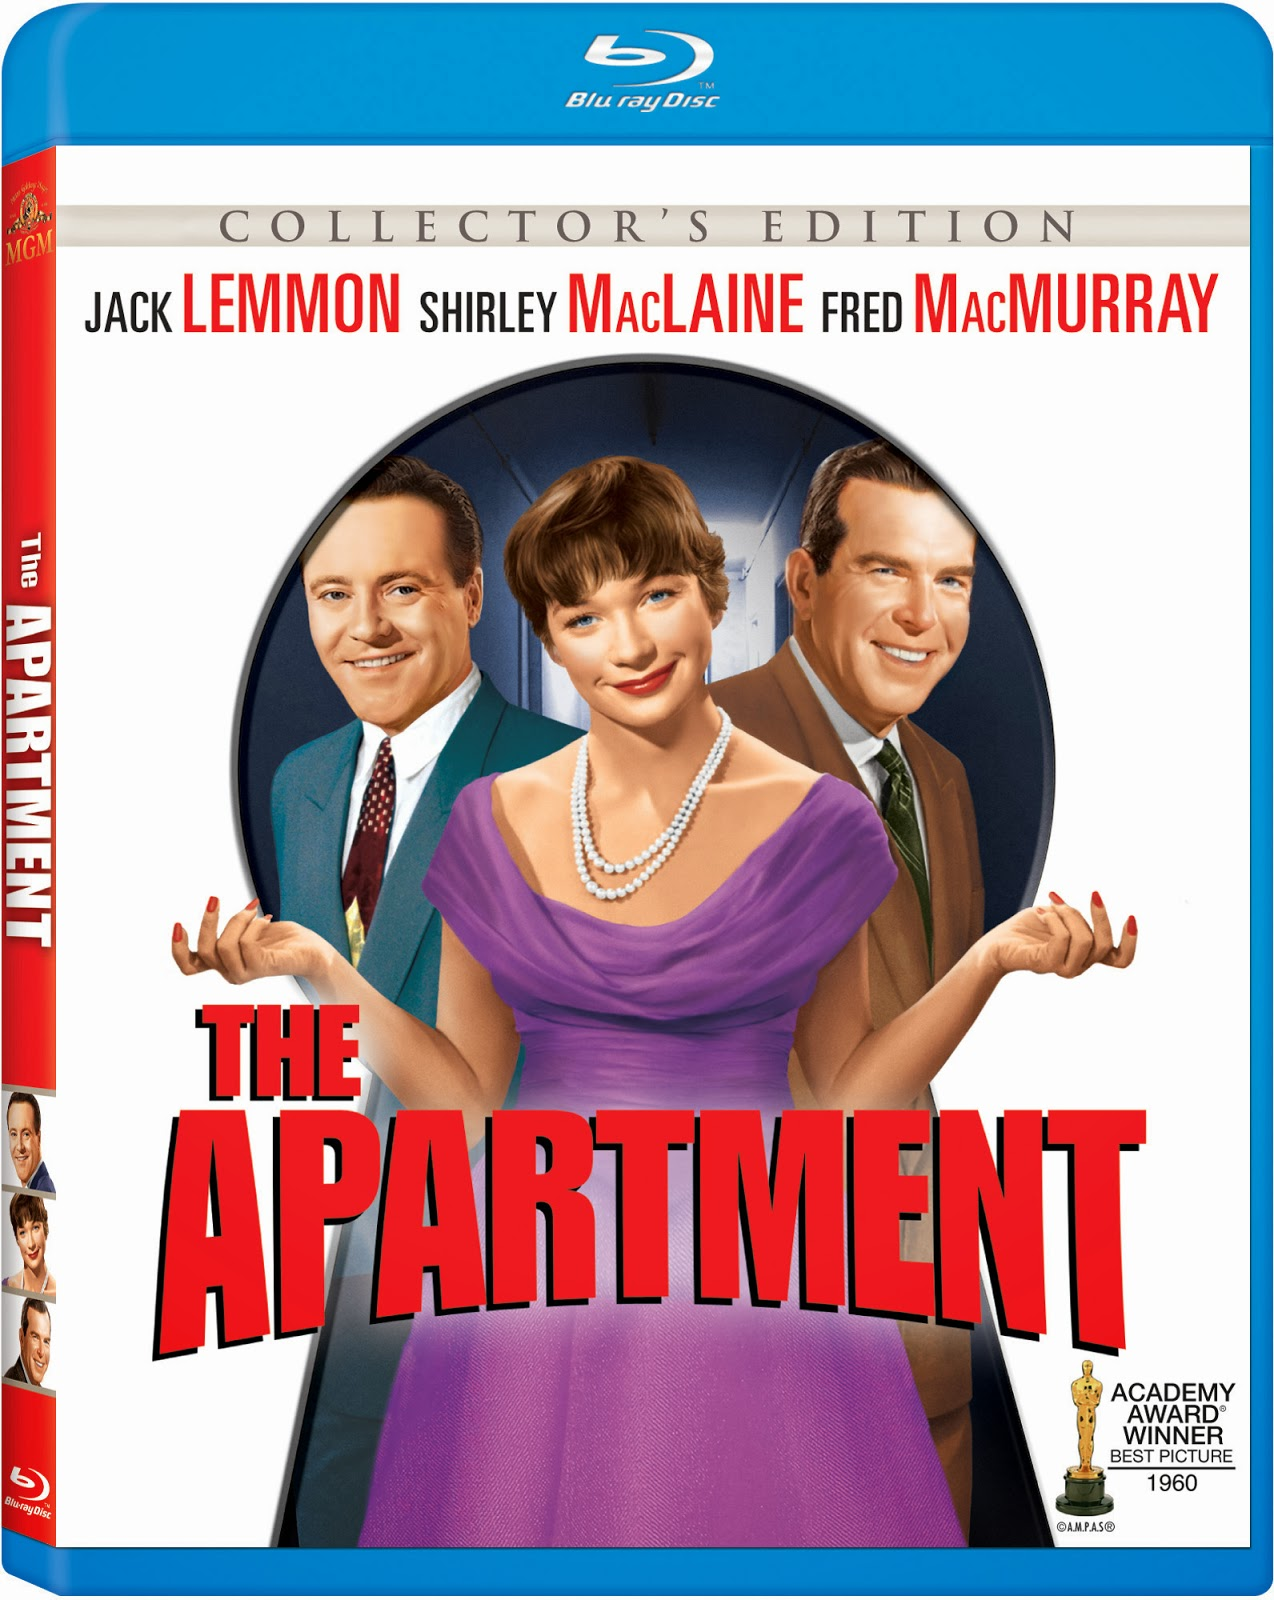 DRD's Movie Musings: The Apartment